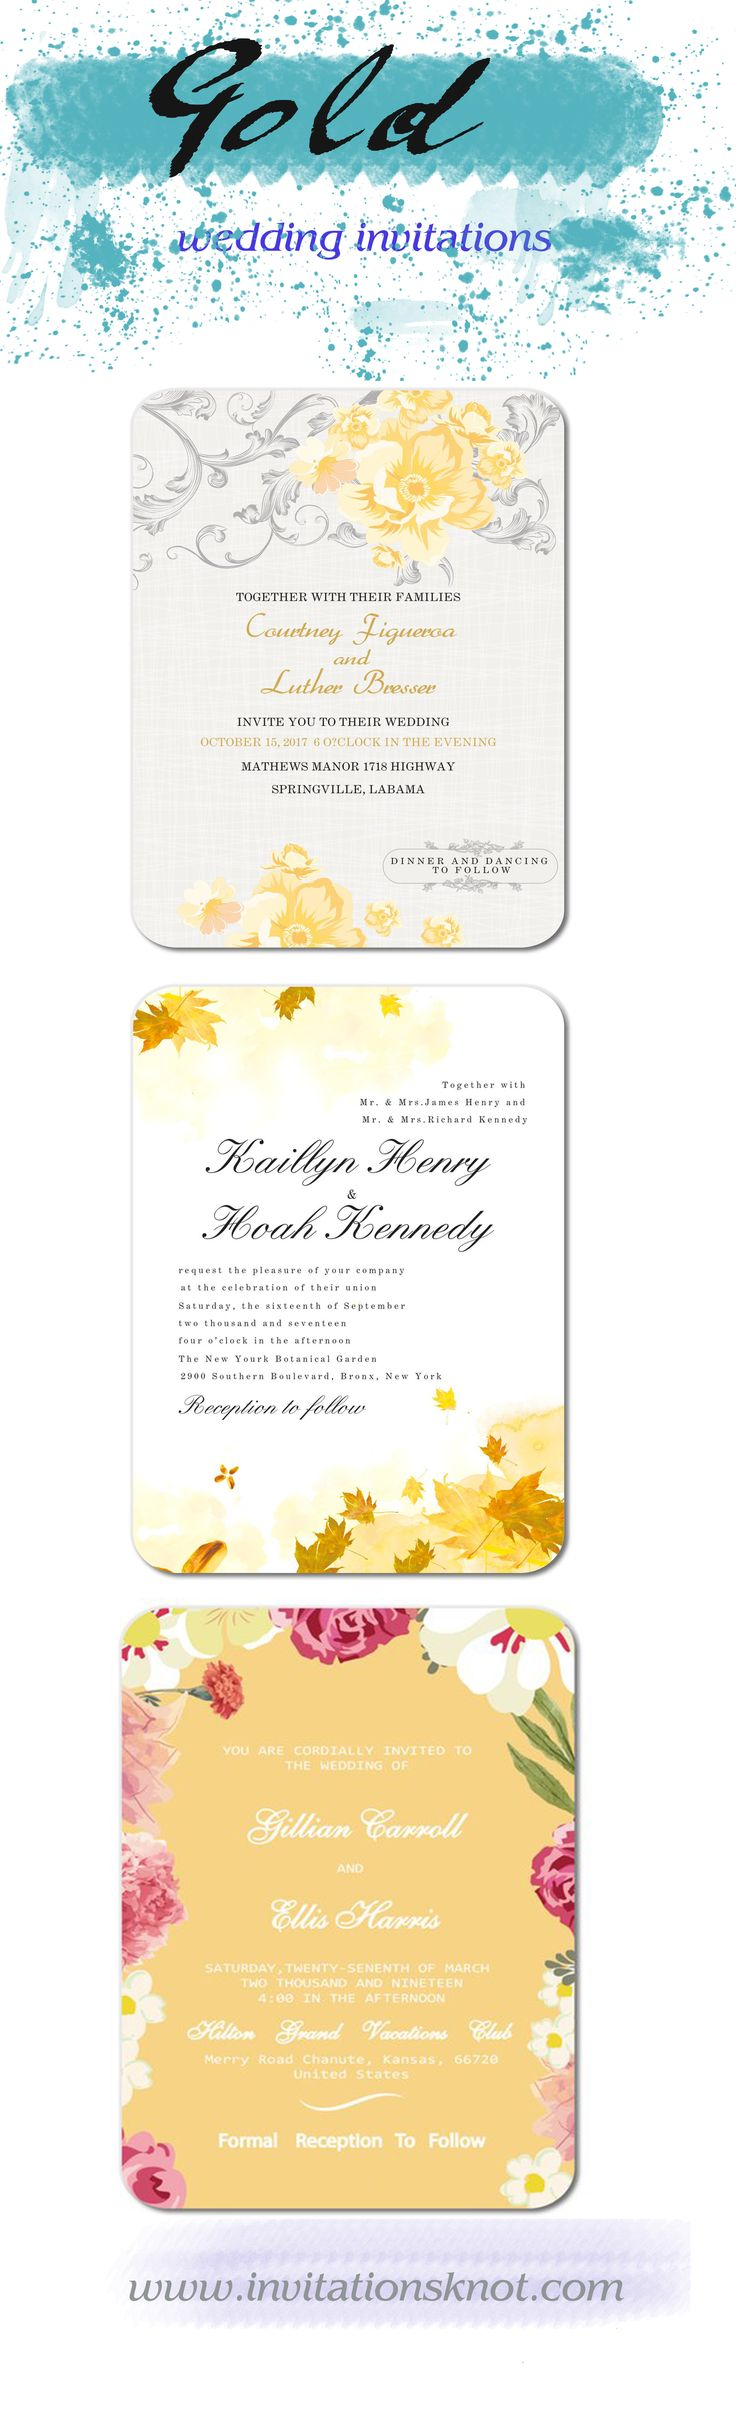 96682bee6e5cf0a00ec9aa28fba7ff14 best 25 response cards ideas on pinterest reading response,Invitation And Response Card Set